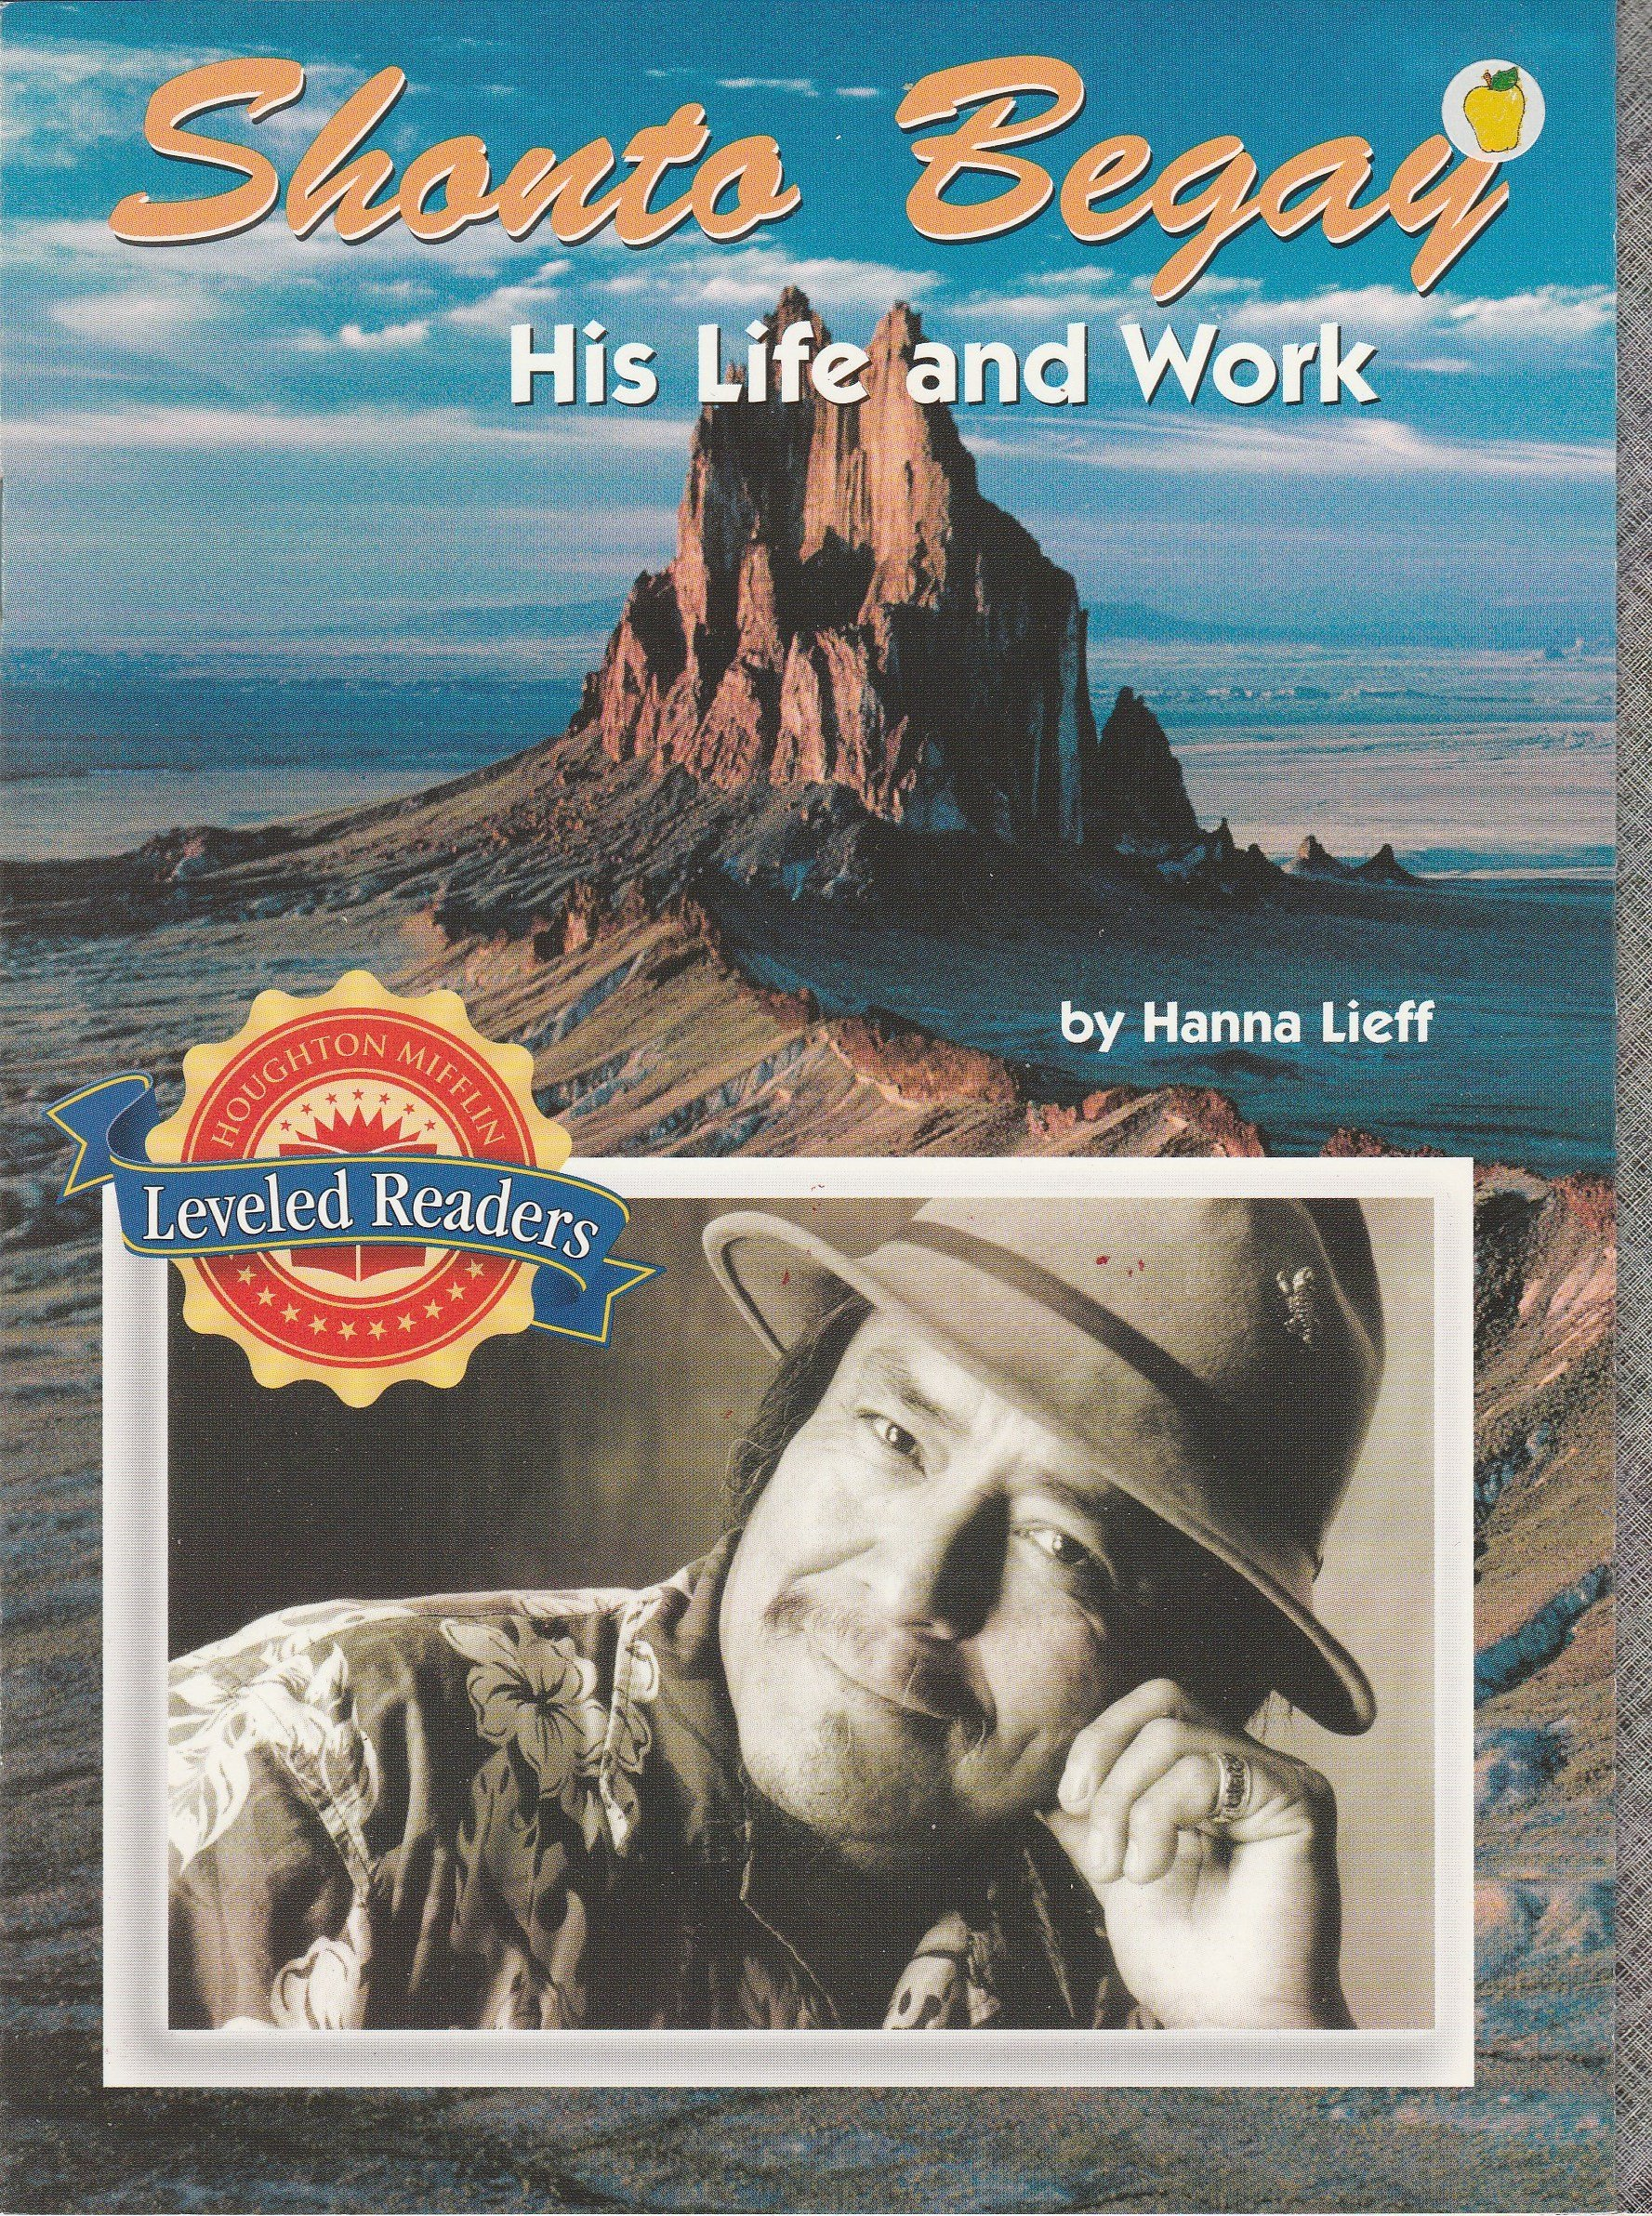 Download Shonto Begay - His Life and Work PDF